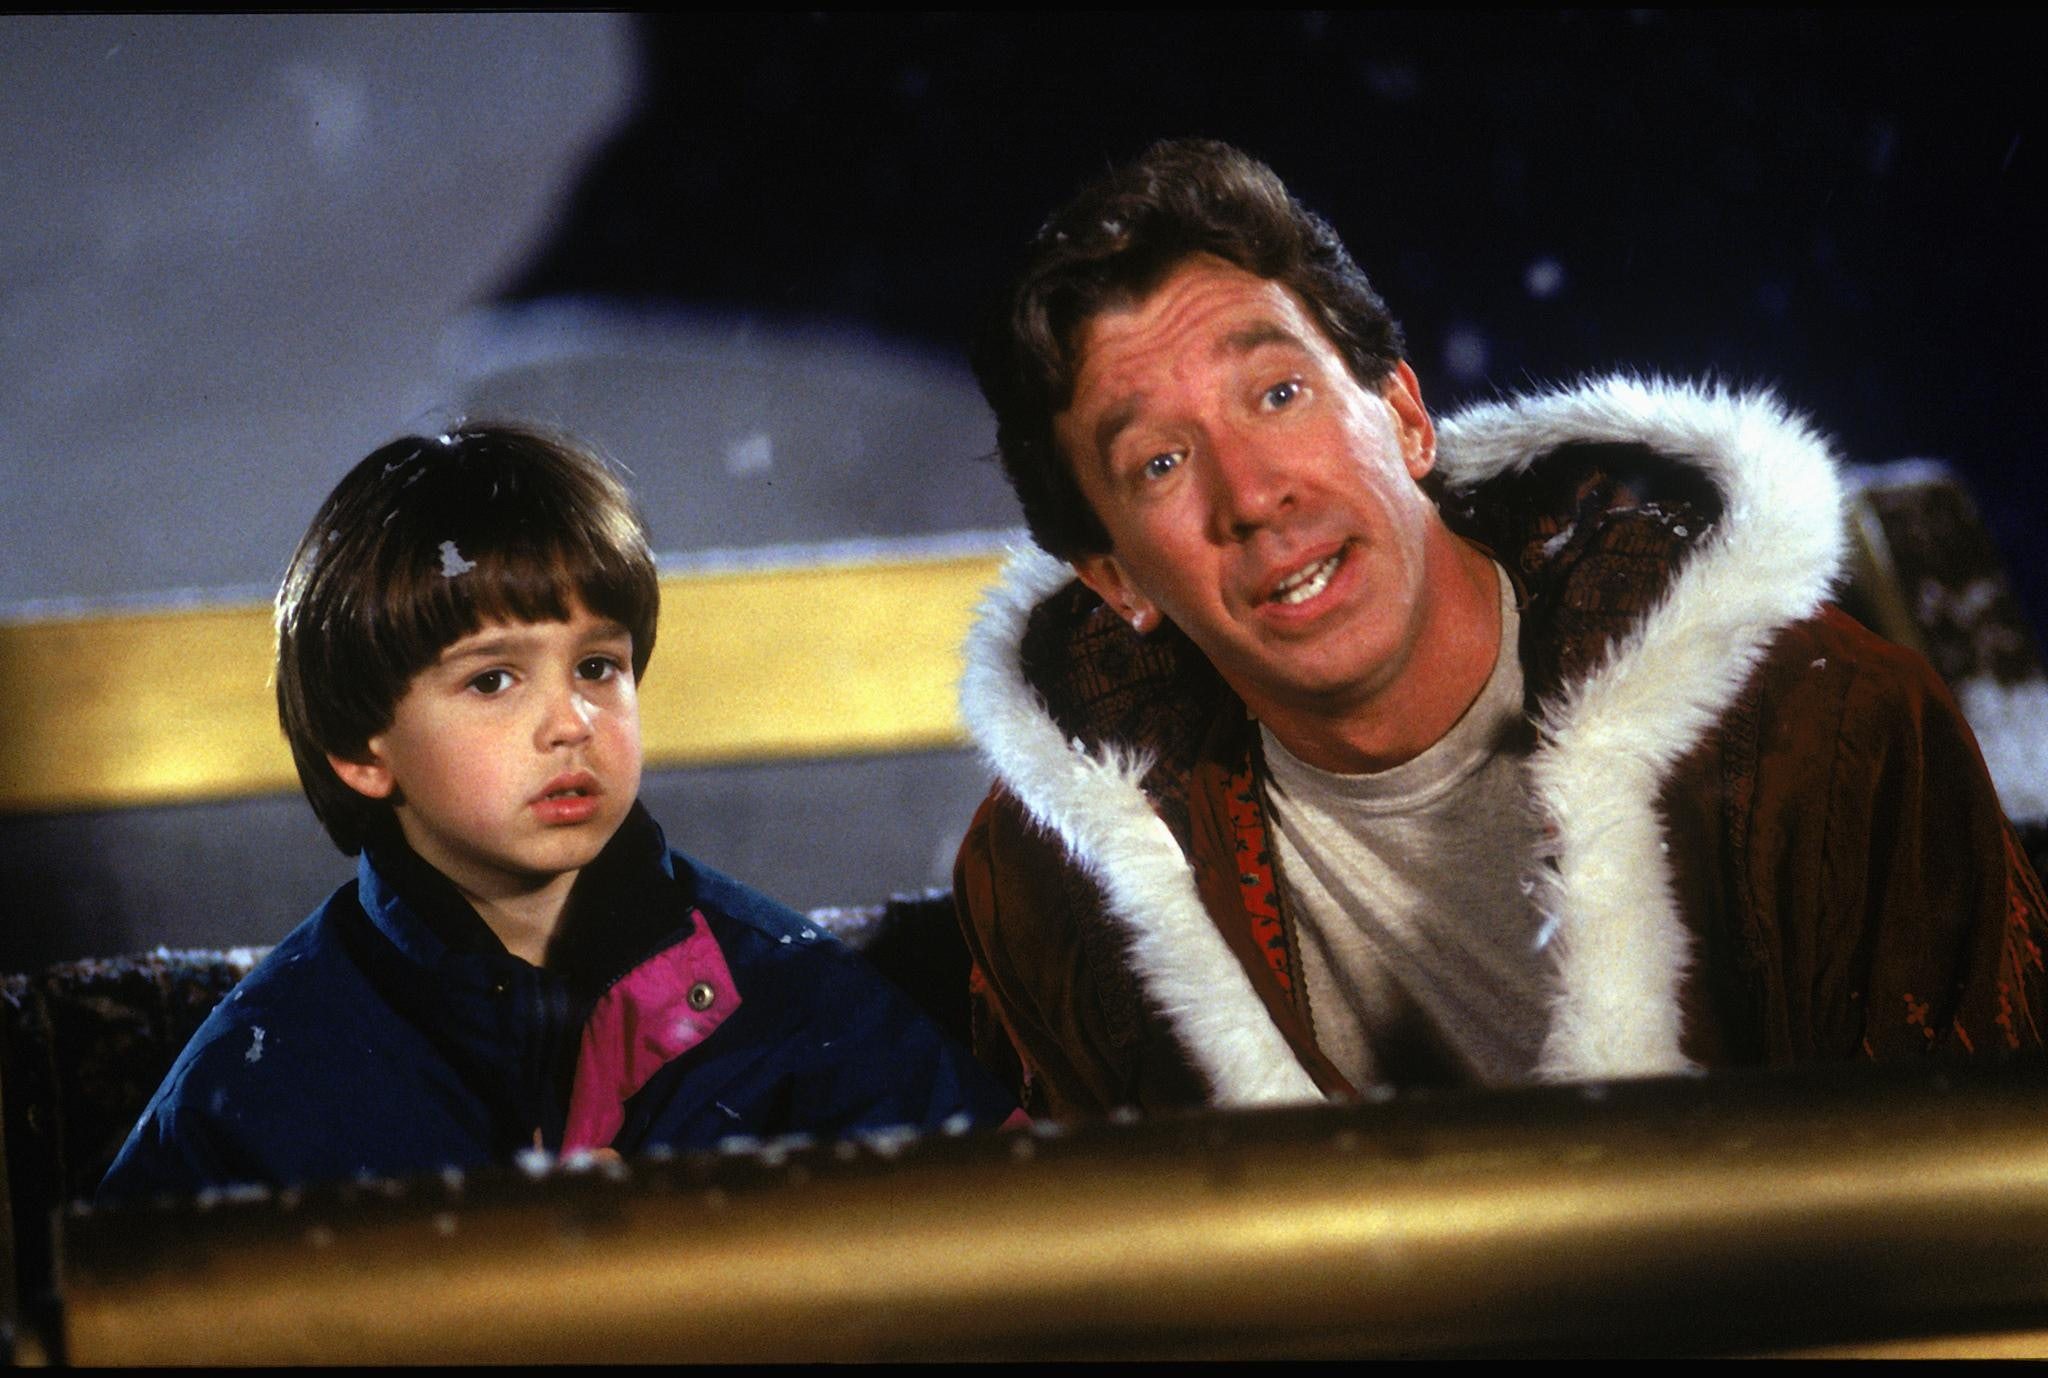 The Santa Clause Turns 20 So Where S Little Charlie Calvin Today Images, Photos, Reviews